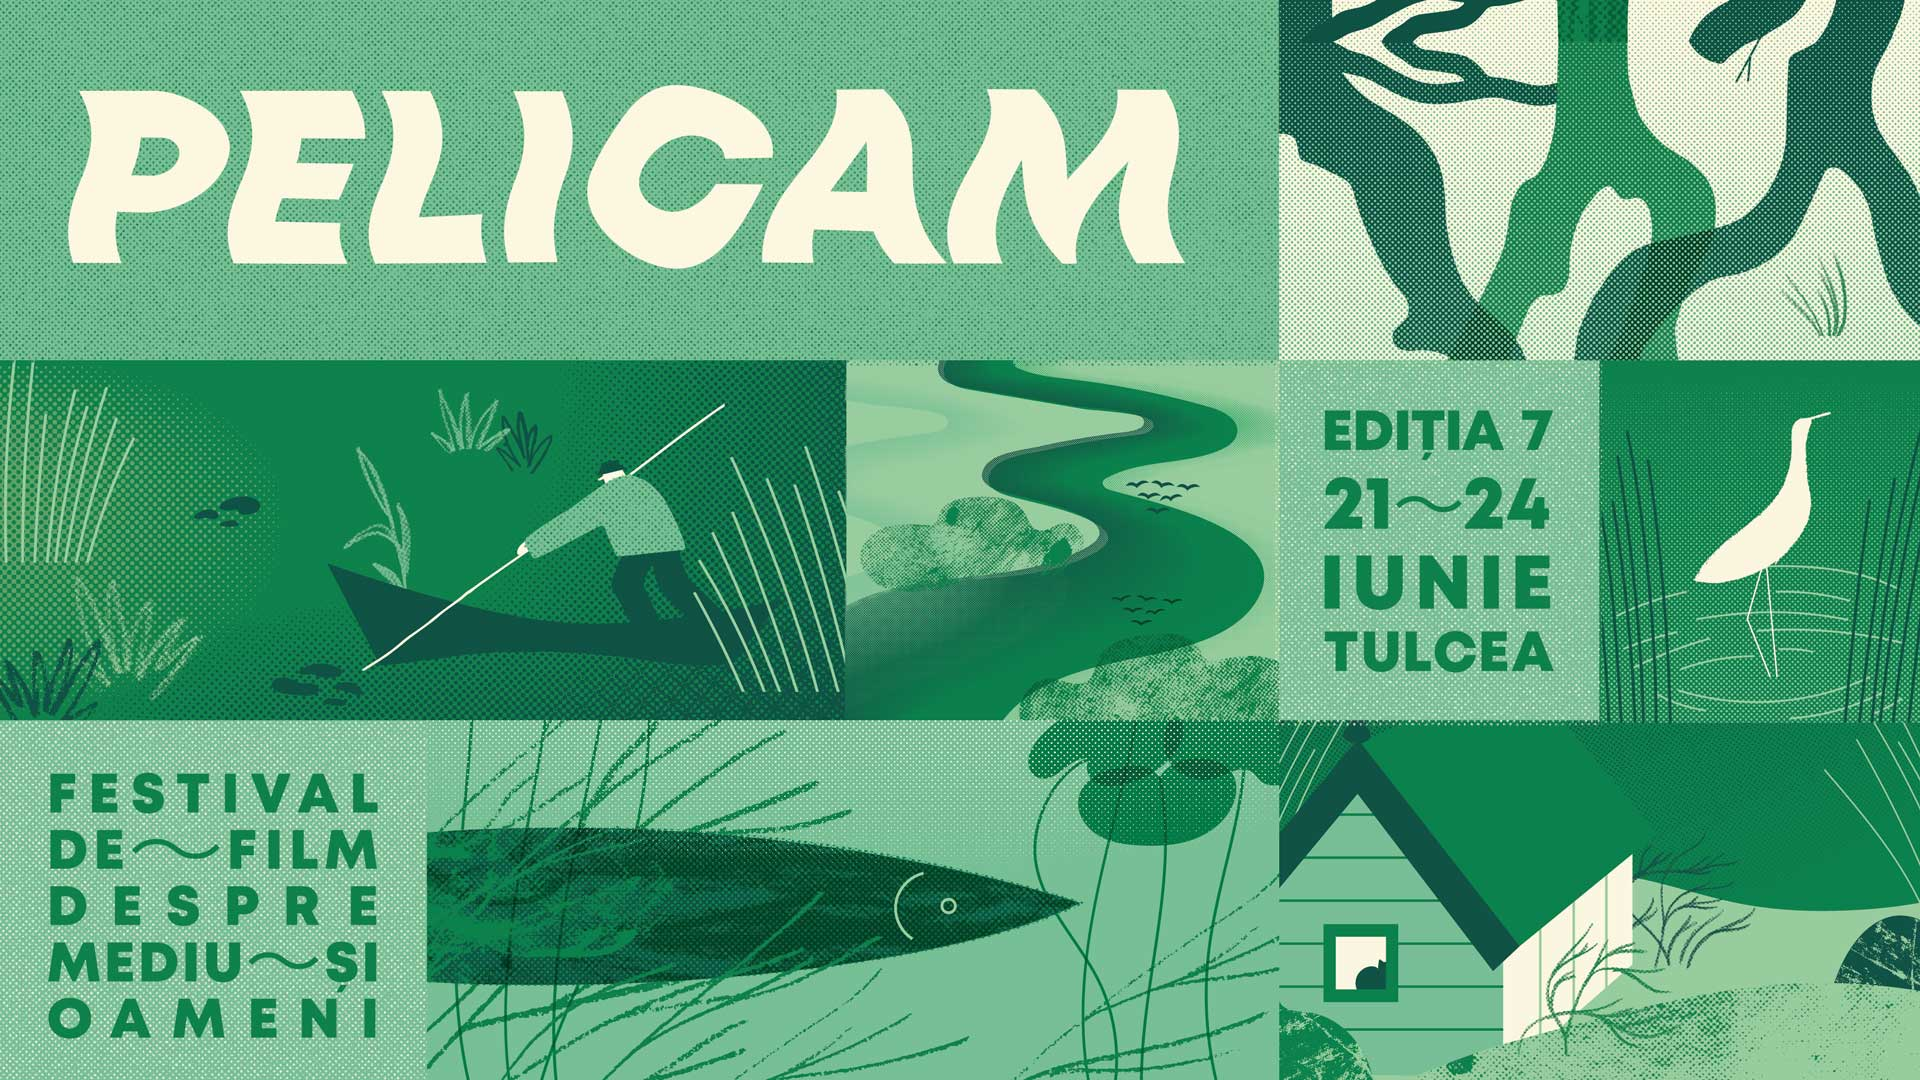 Around the Black Sea with the help of five documentaries from Pelicam